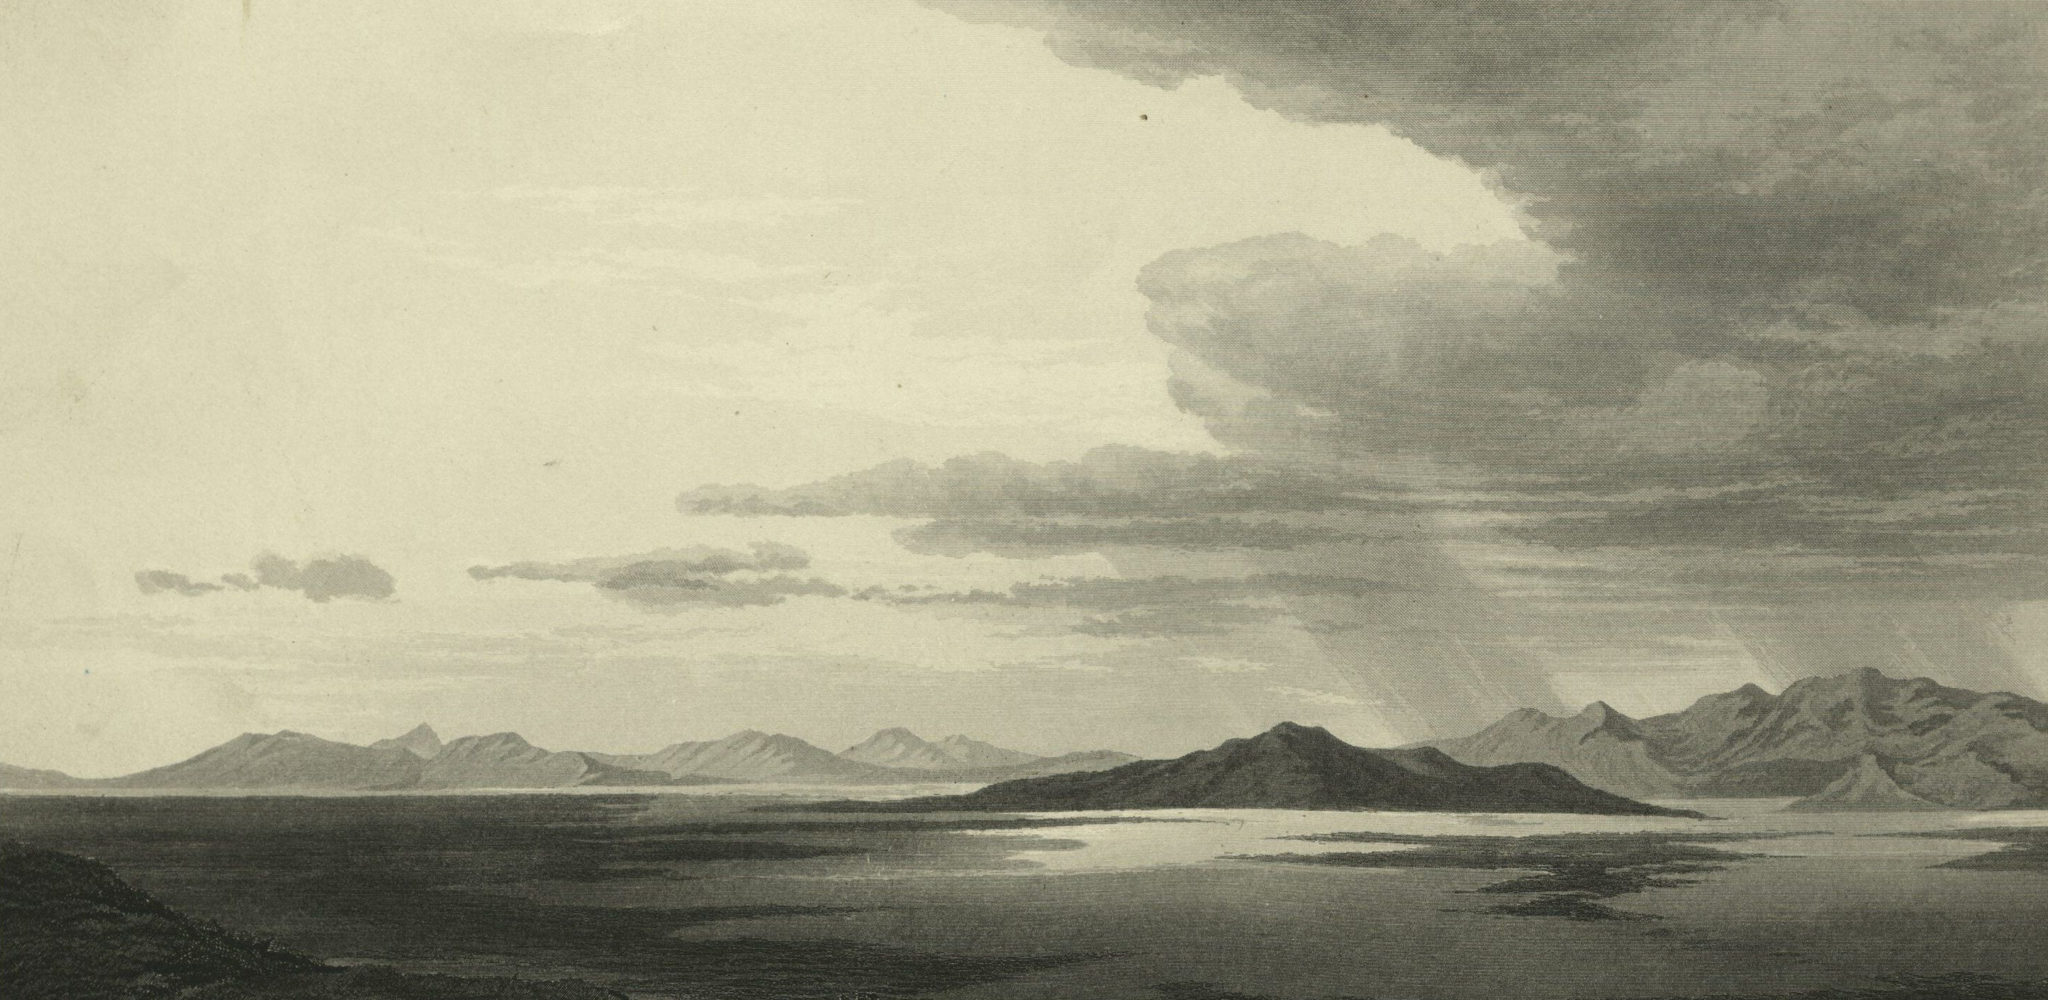 image of mountains in Great Salt Lake from Frederick Piercy, Route from Liverpool...,1855